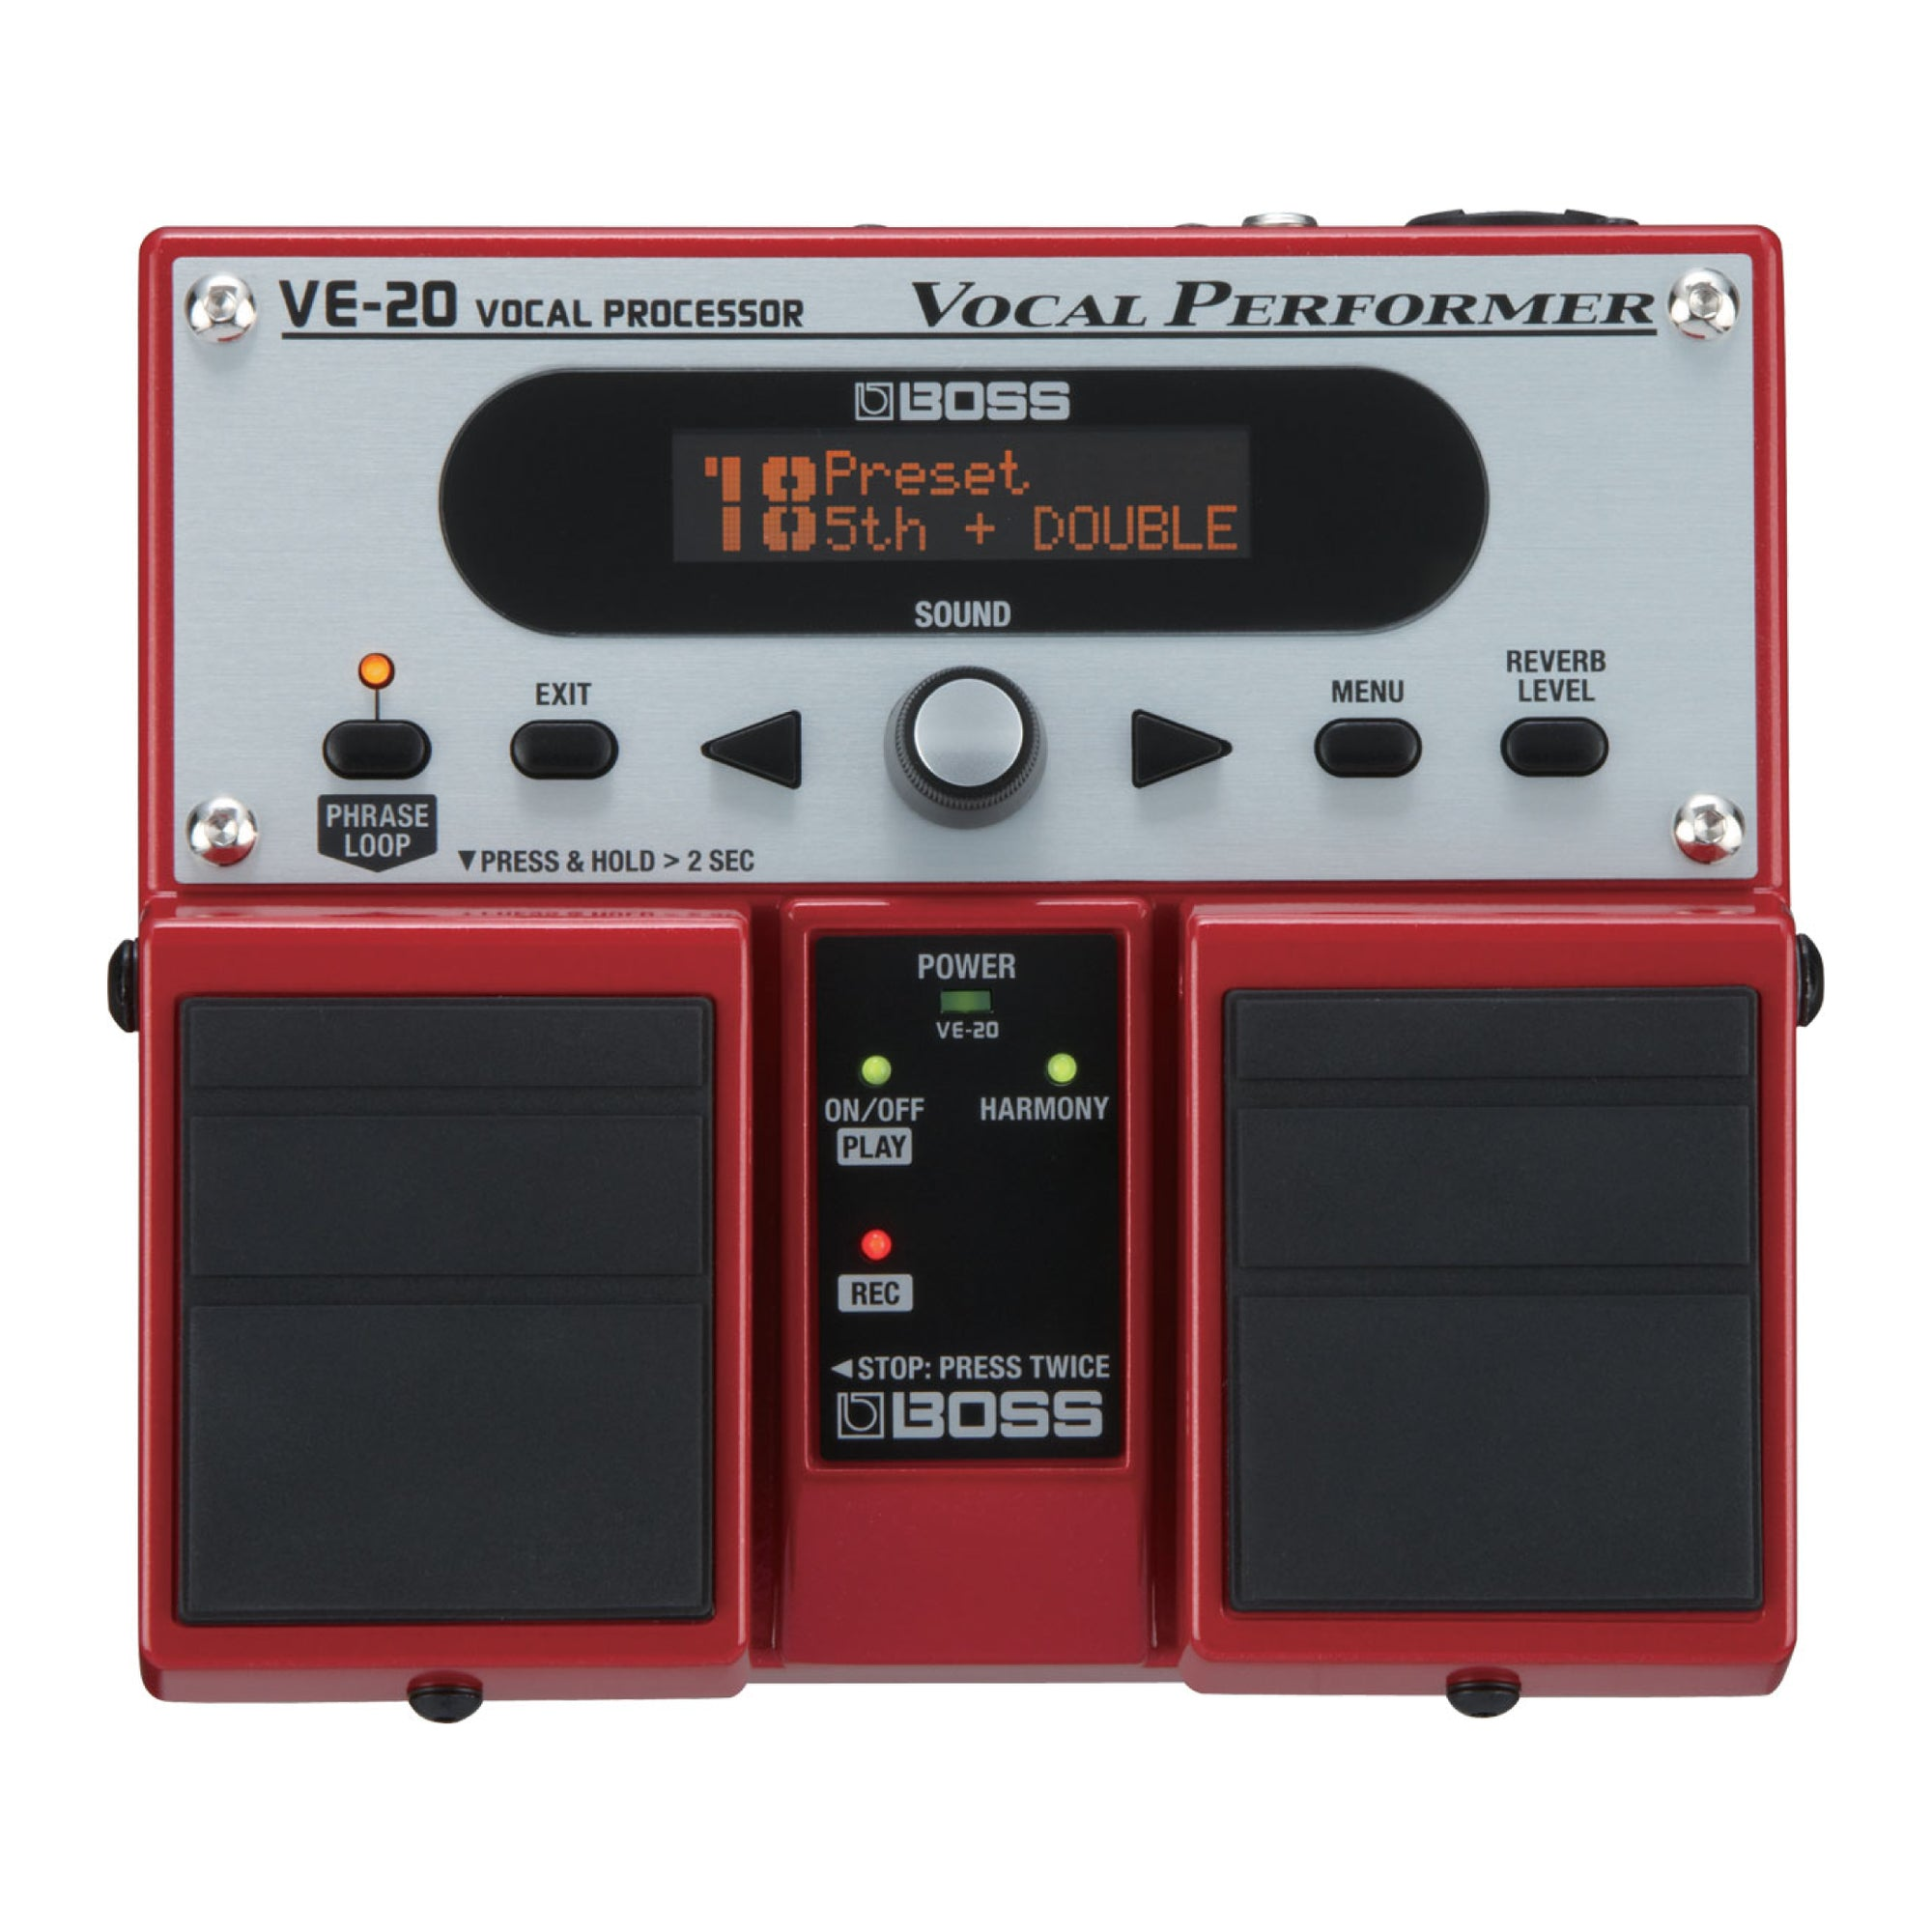 BOSS VE-20 Vocal Processor - Tarpley Music Company, Inc.